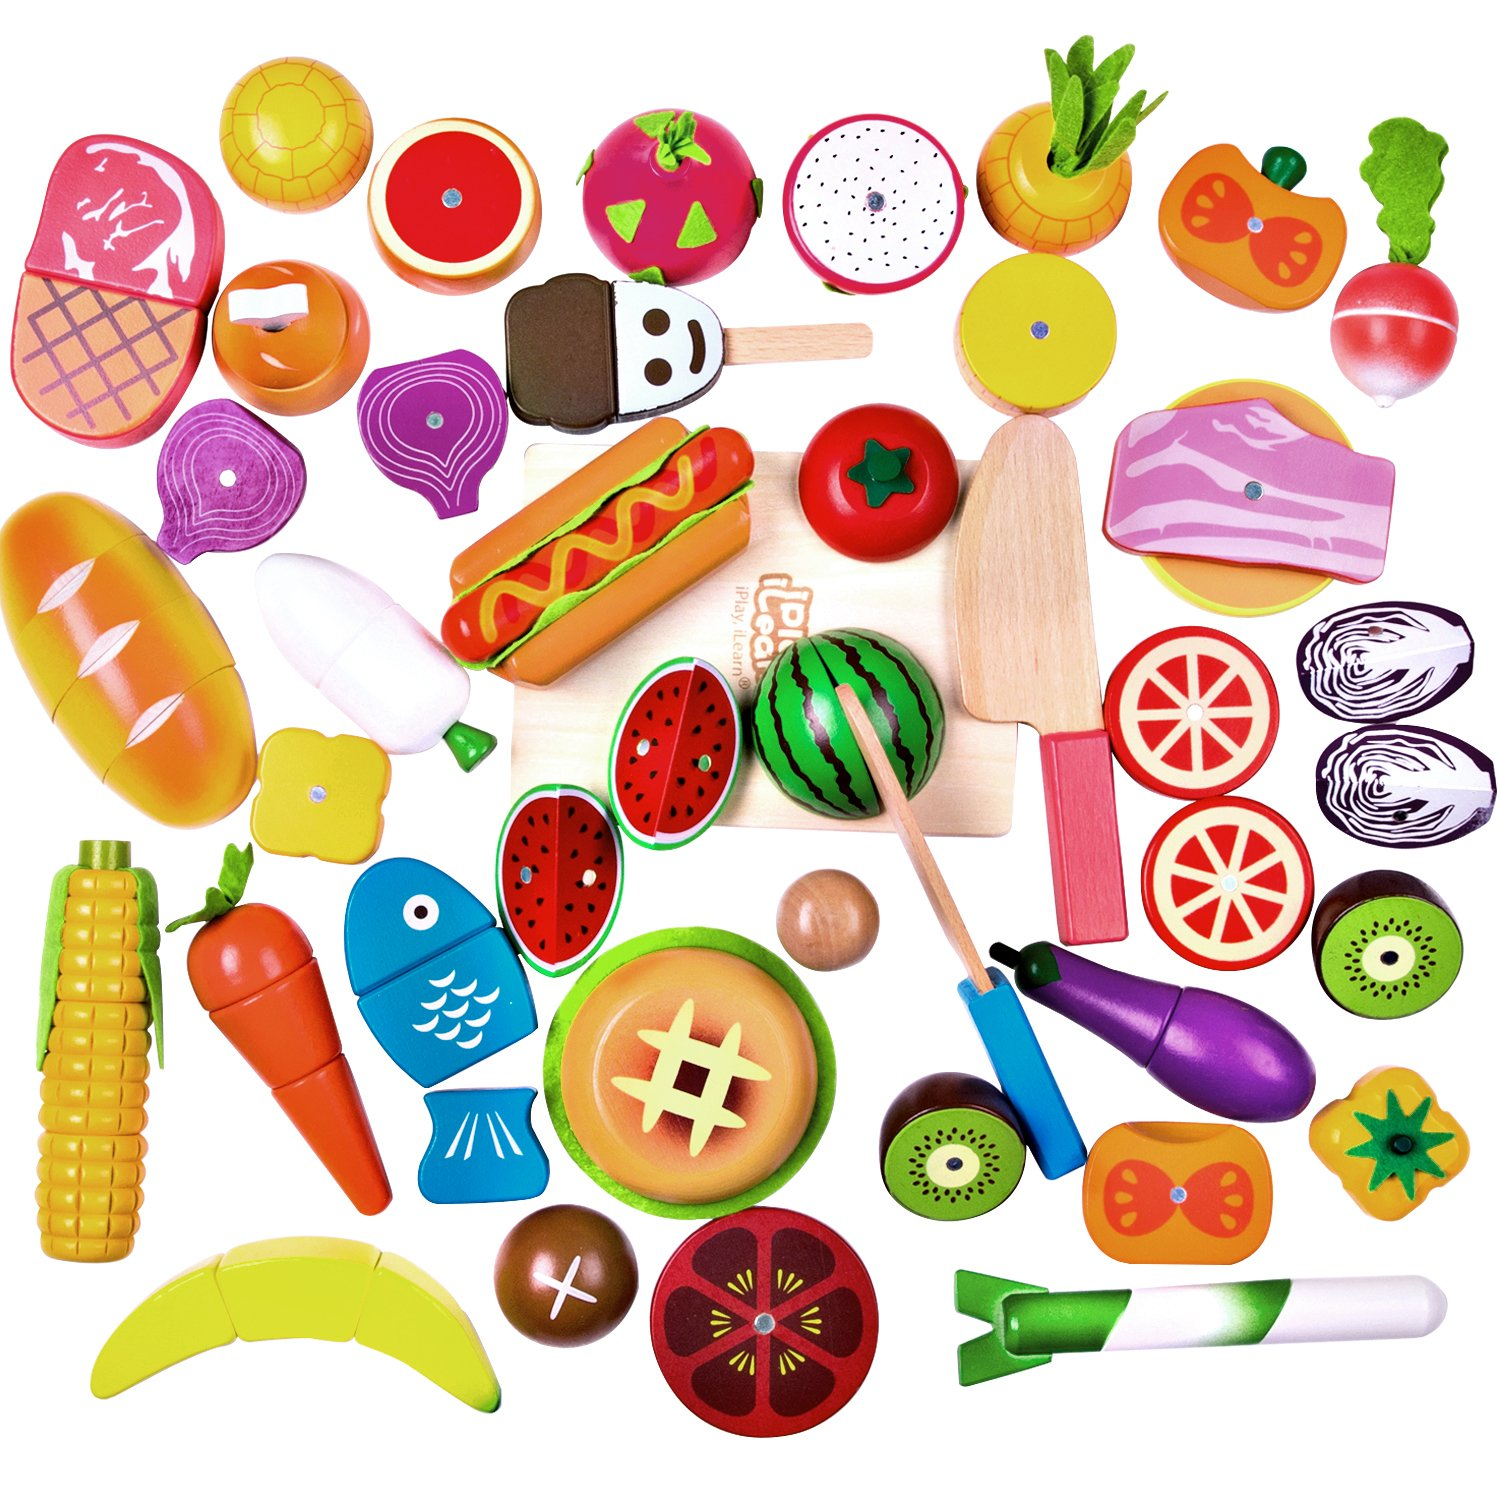 4-5 nutrition toys clipart svg royalty free iPlay, iLearn Cutting & Cooking Toy, Wooden Food, Pretend Play Kitchen Set,  Magnetic Wood Fruit, Early Educational Development, Learning Gift for 2, ... svg royalty free